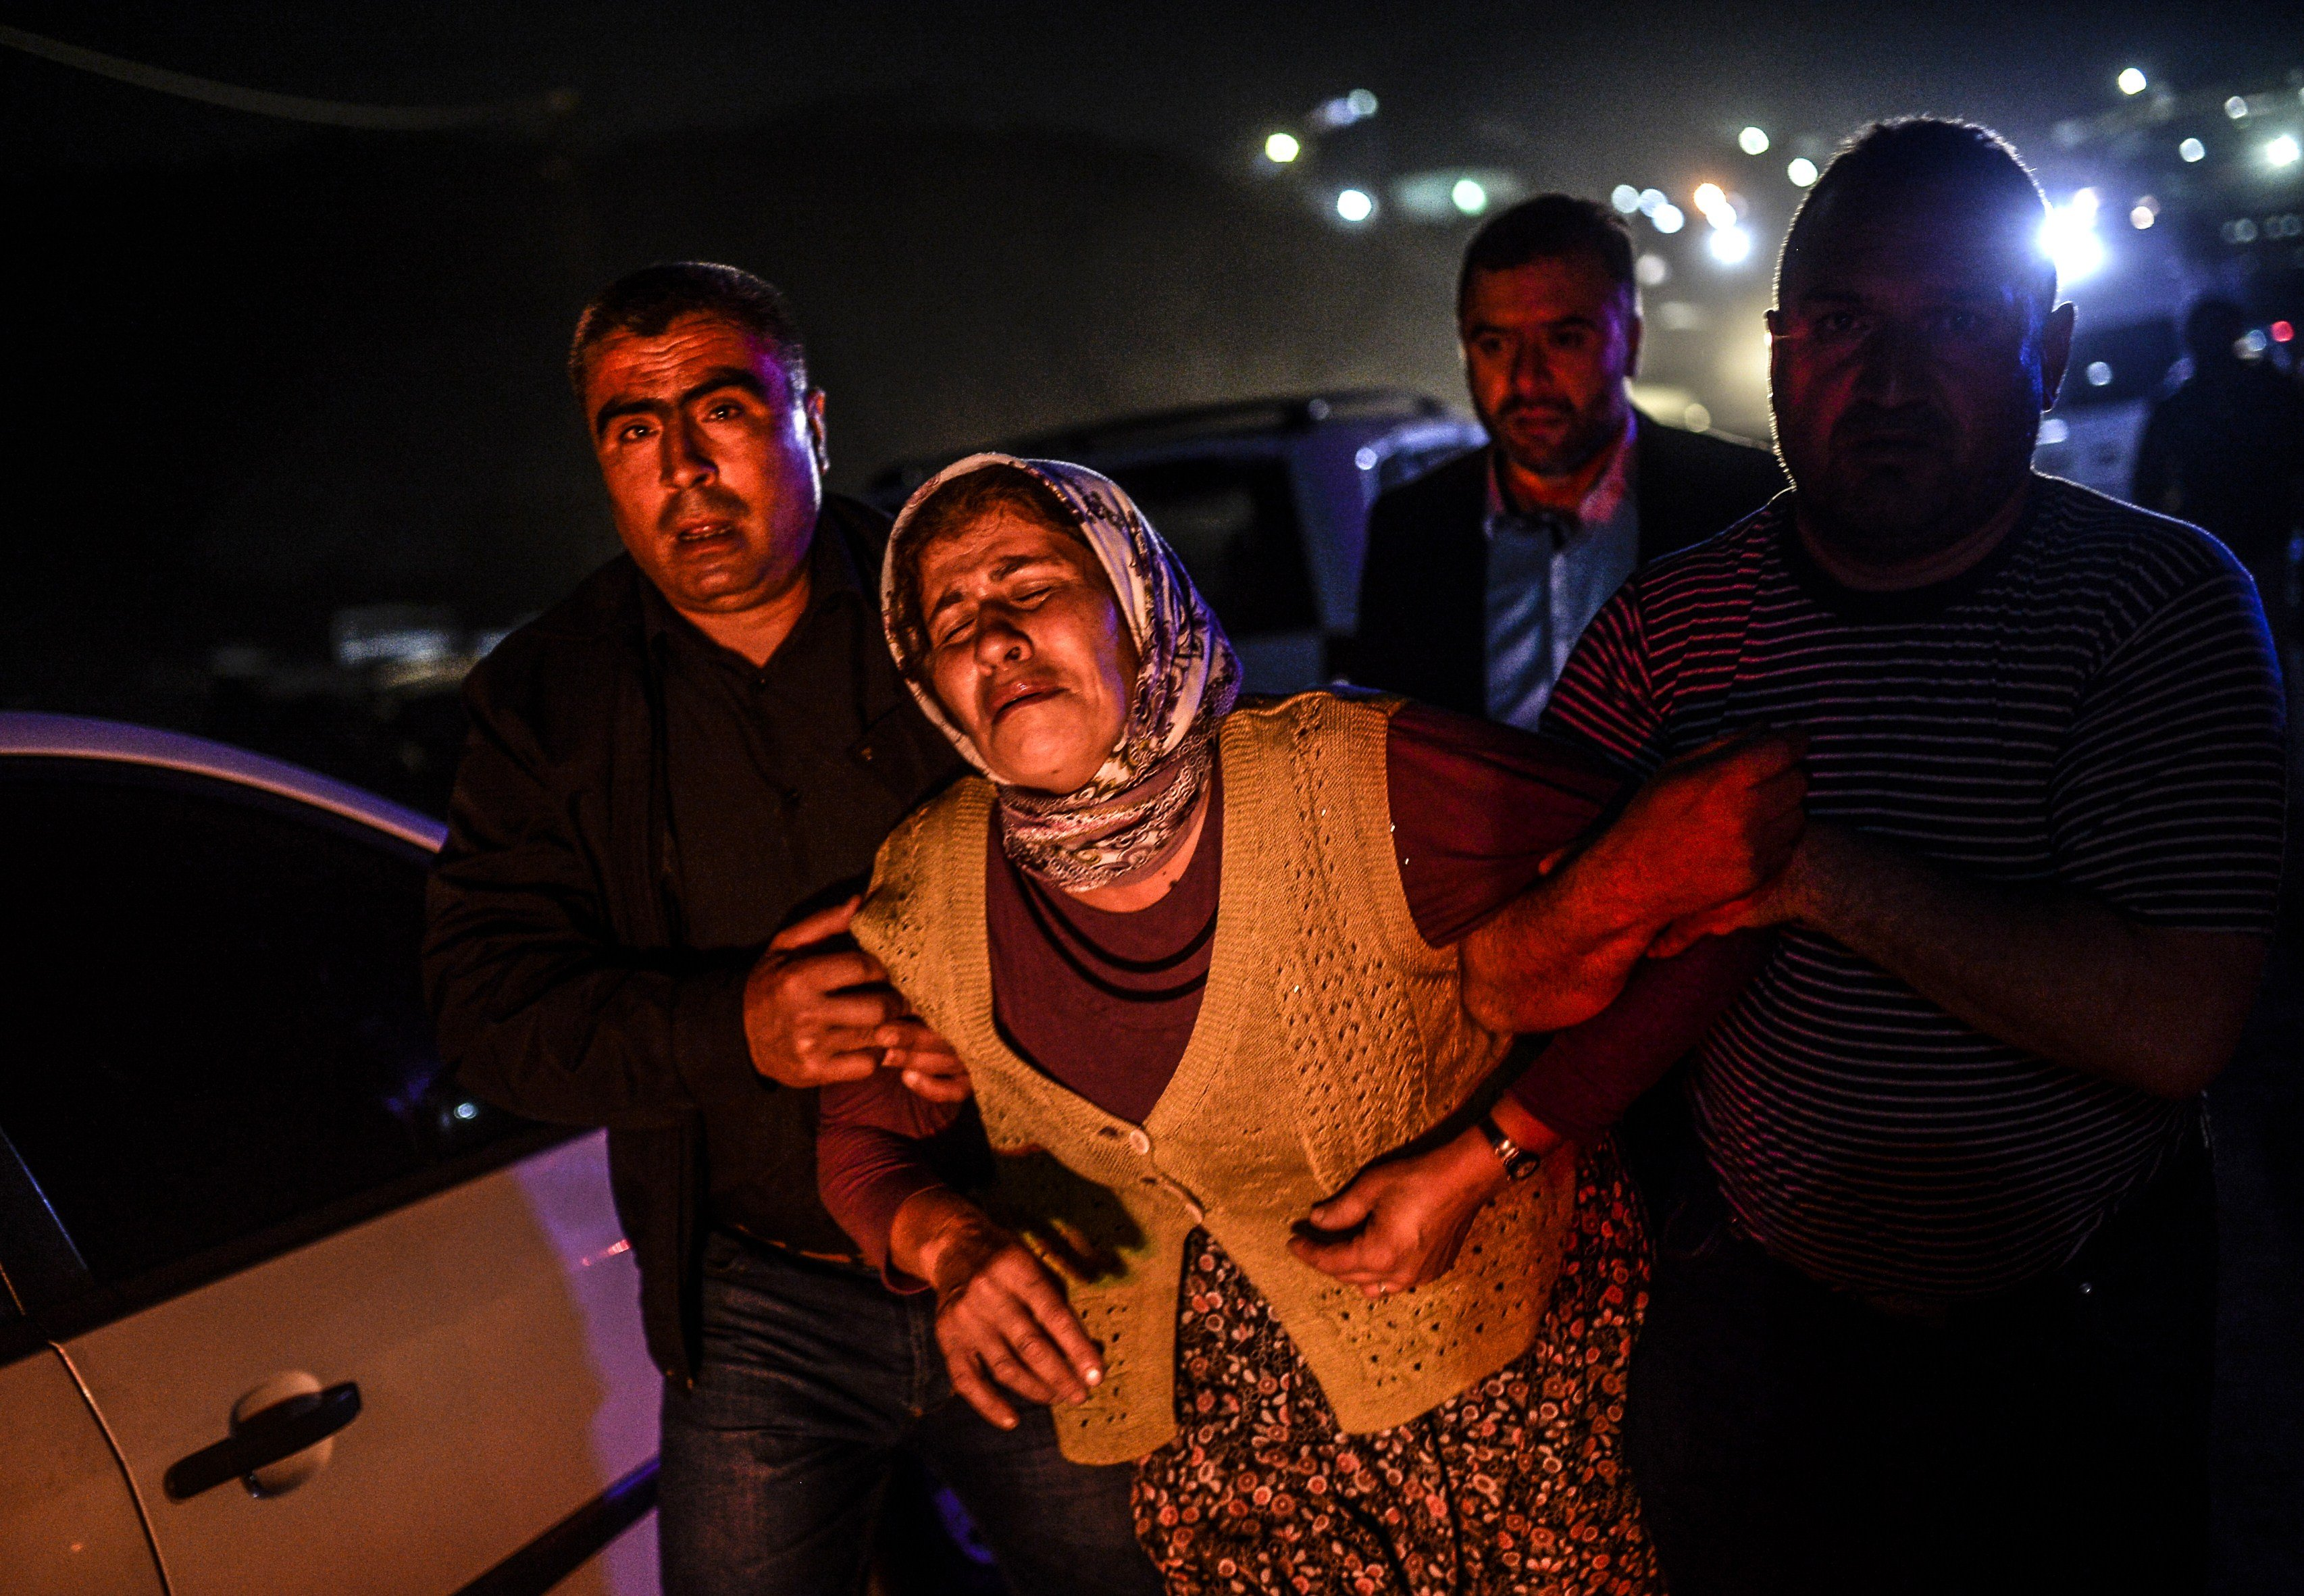 People cry after their relatives died in an explosion in Manisa on May 13, 2014.